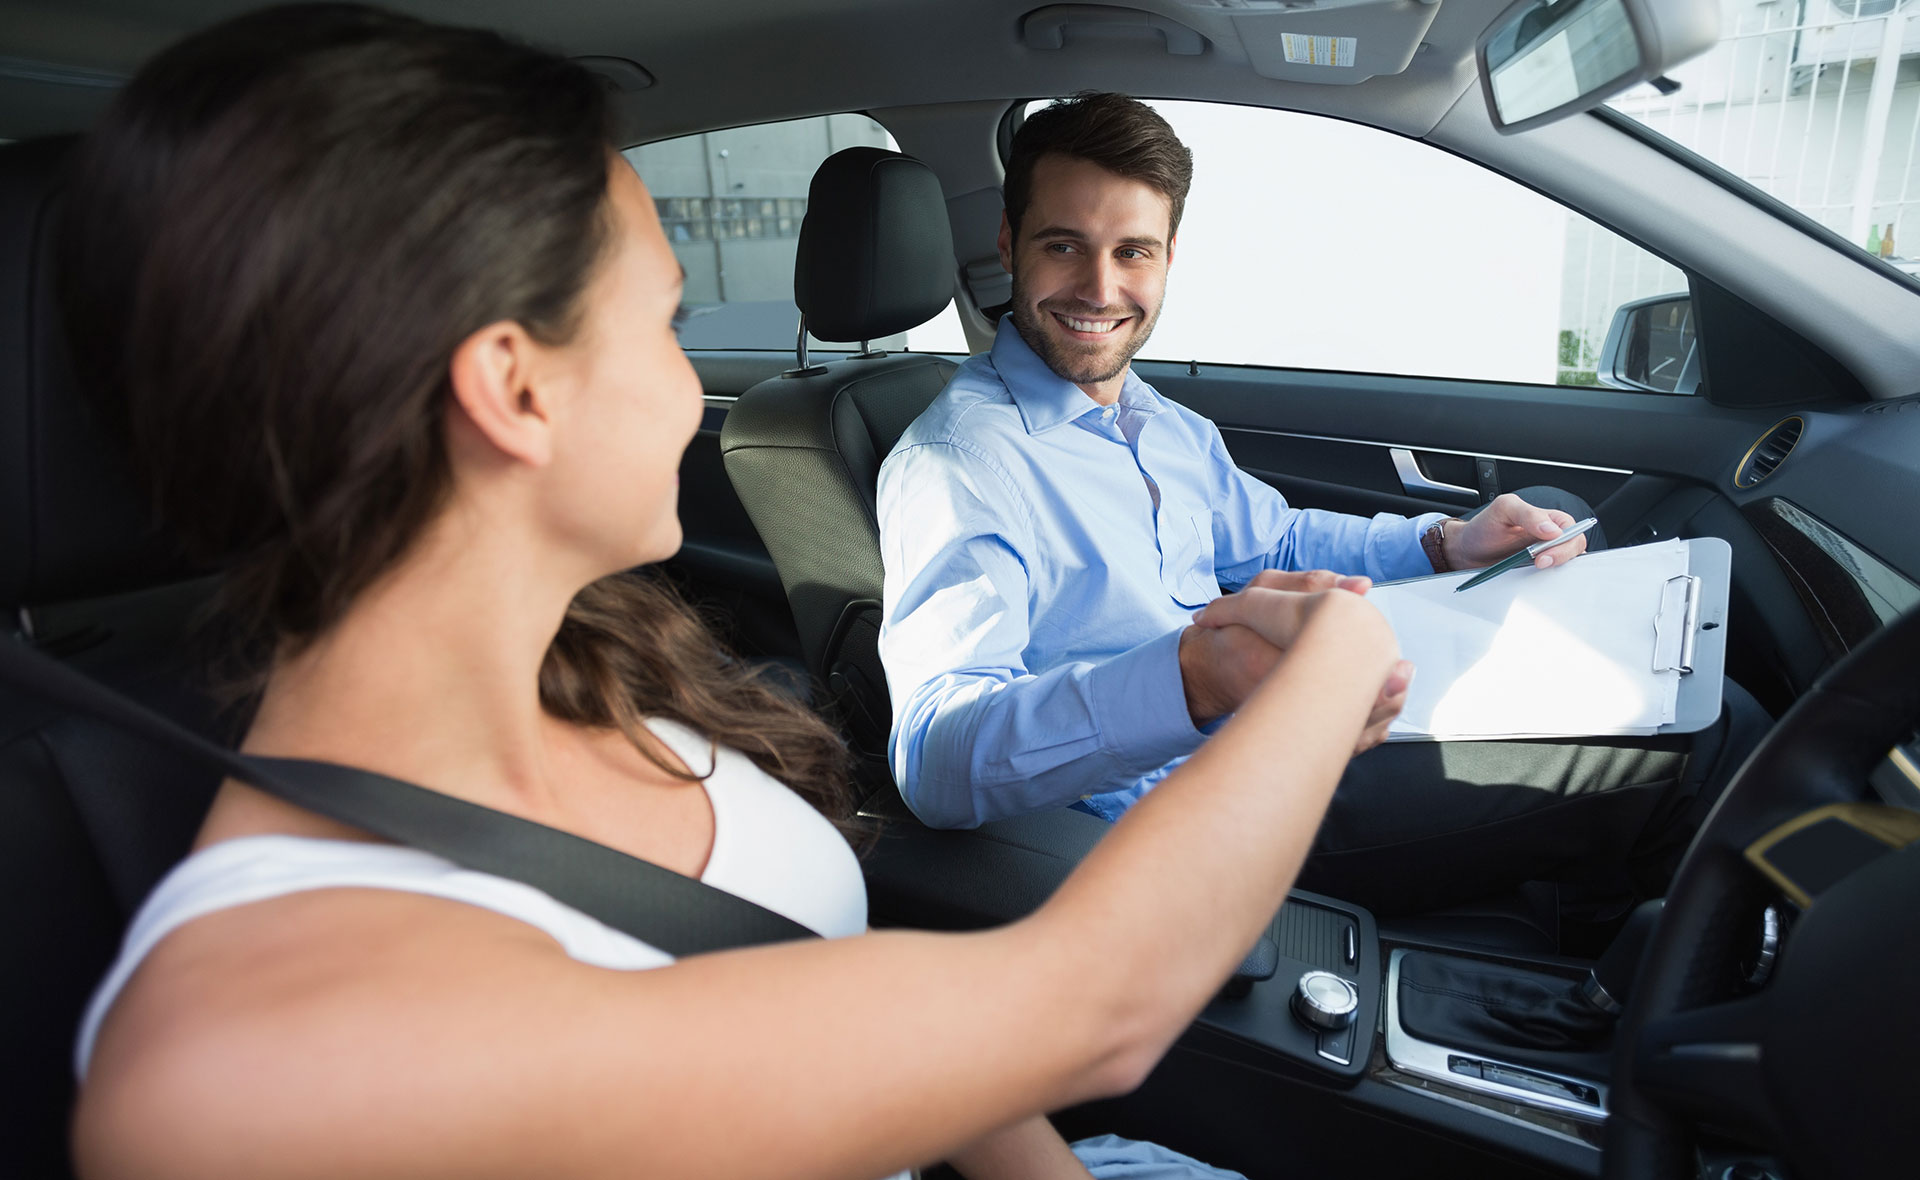 Road Testing woman shaking hand with happy man